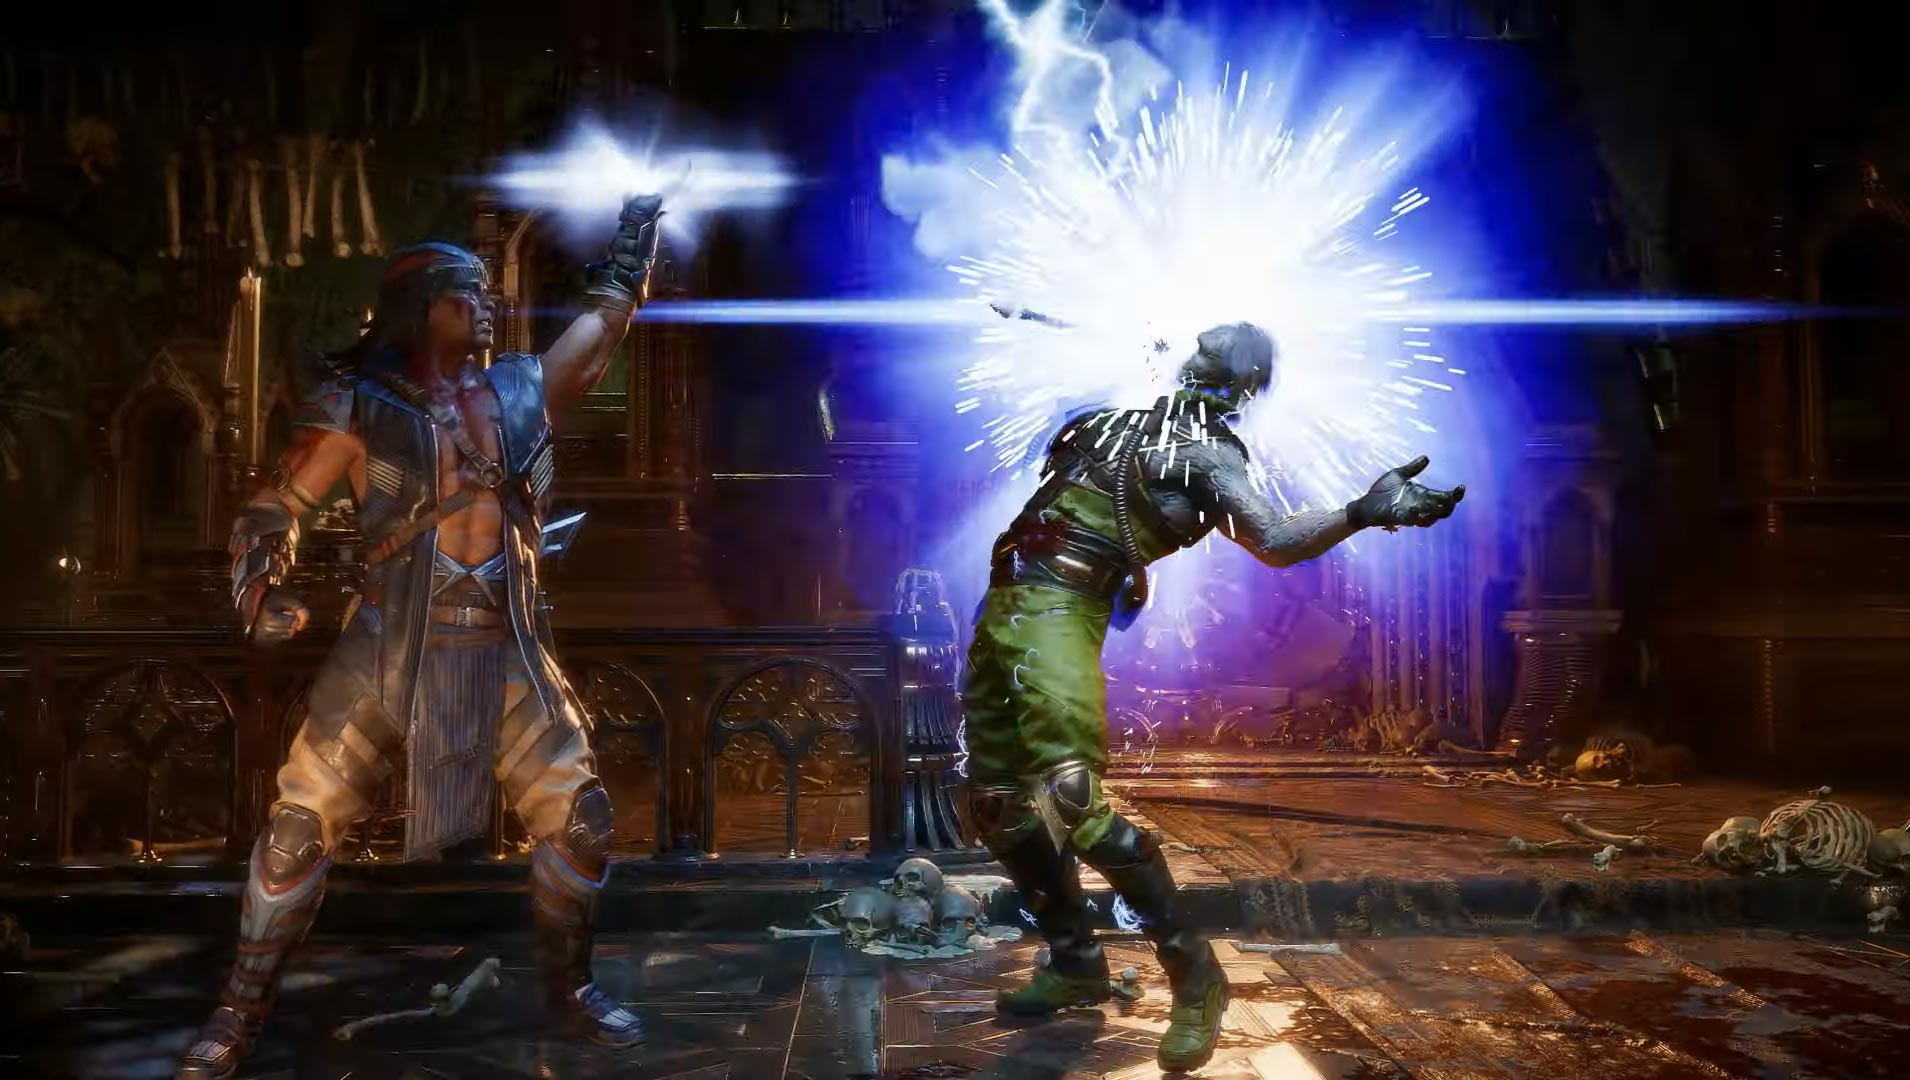 Nightwolf in Mortal Kombat 11 7 out of 9 image gallery